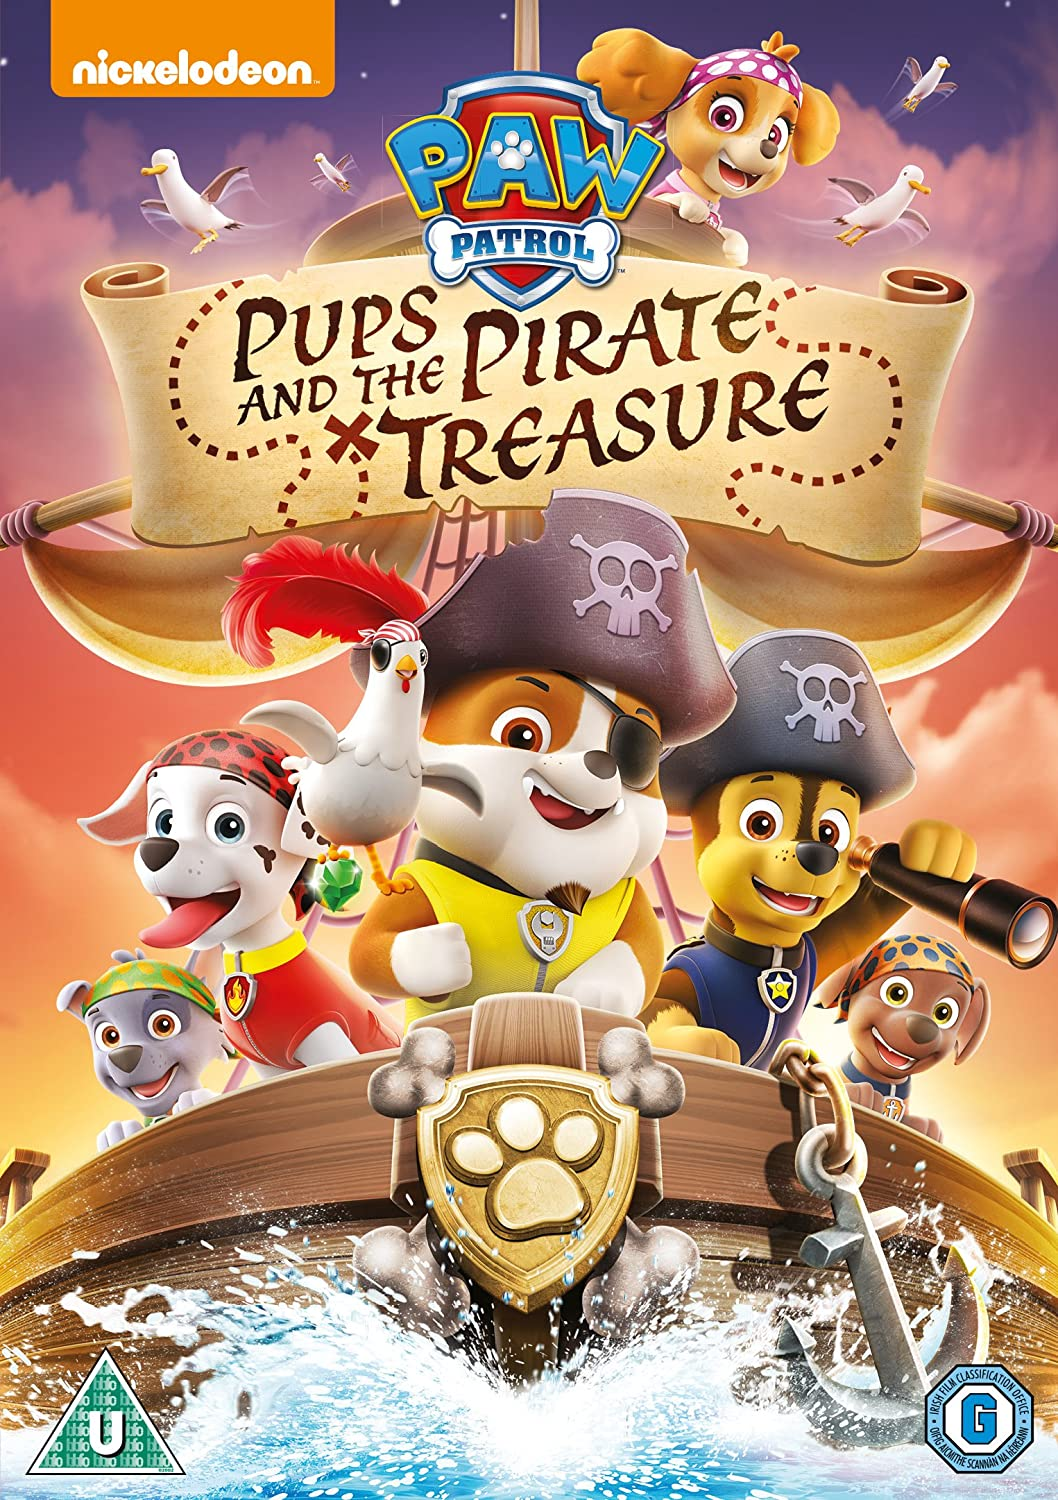 Paw Patrol: Pups And The Pirate Treasure 2015